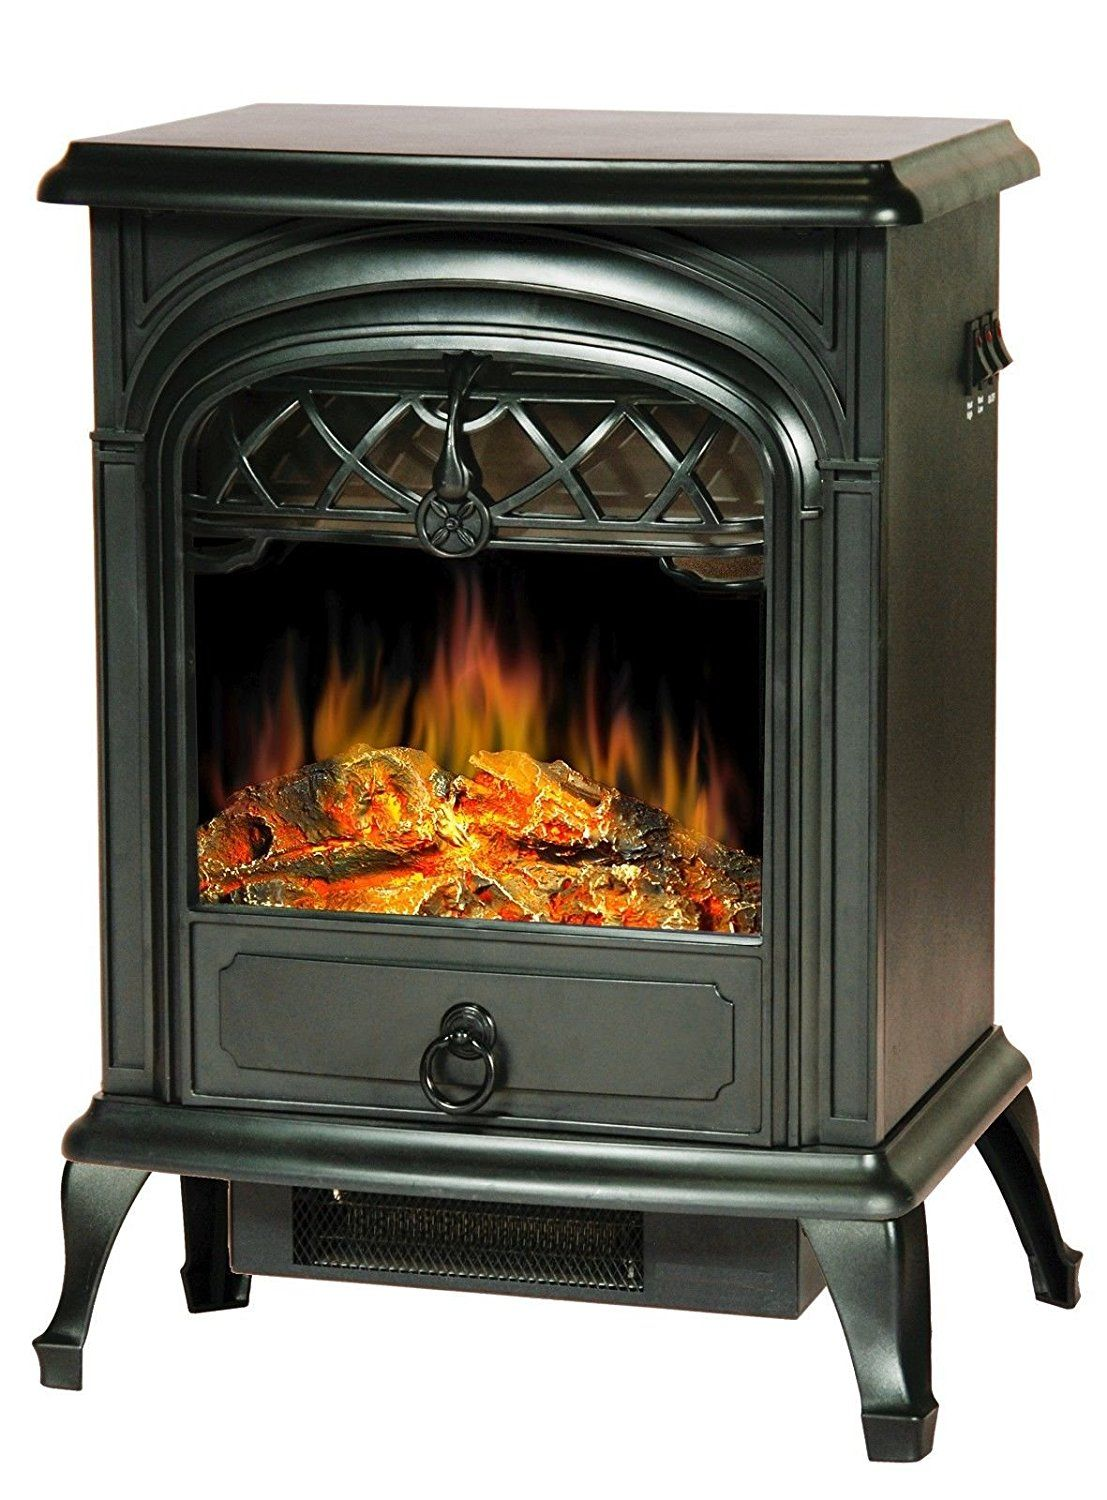 Clevr Free Standing Portable 1500w Electric Fireplace Heater Up To